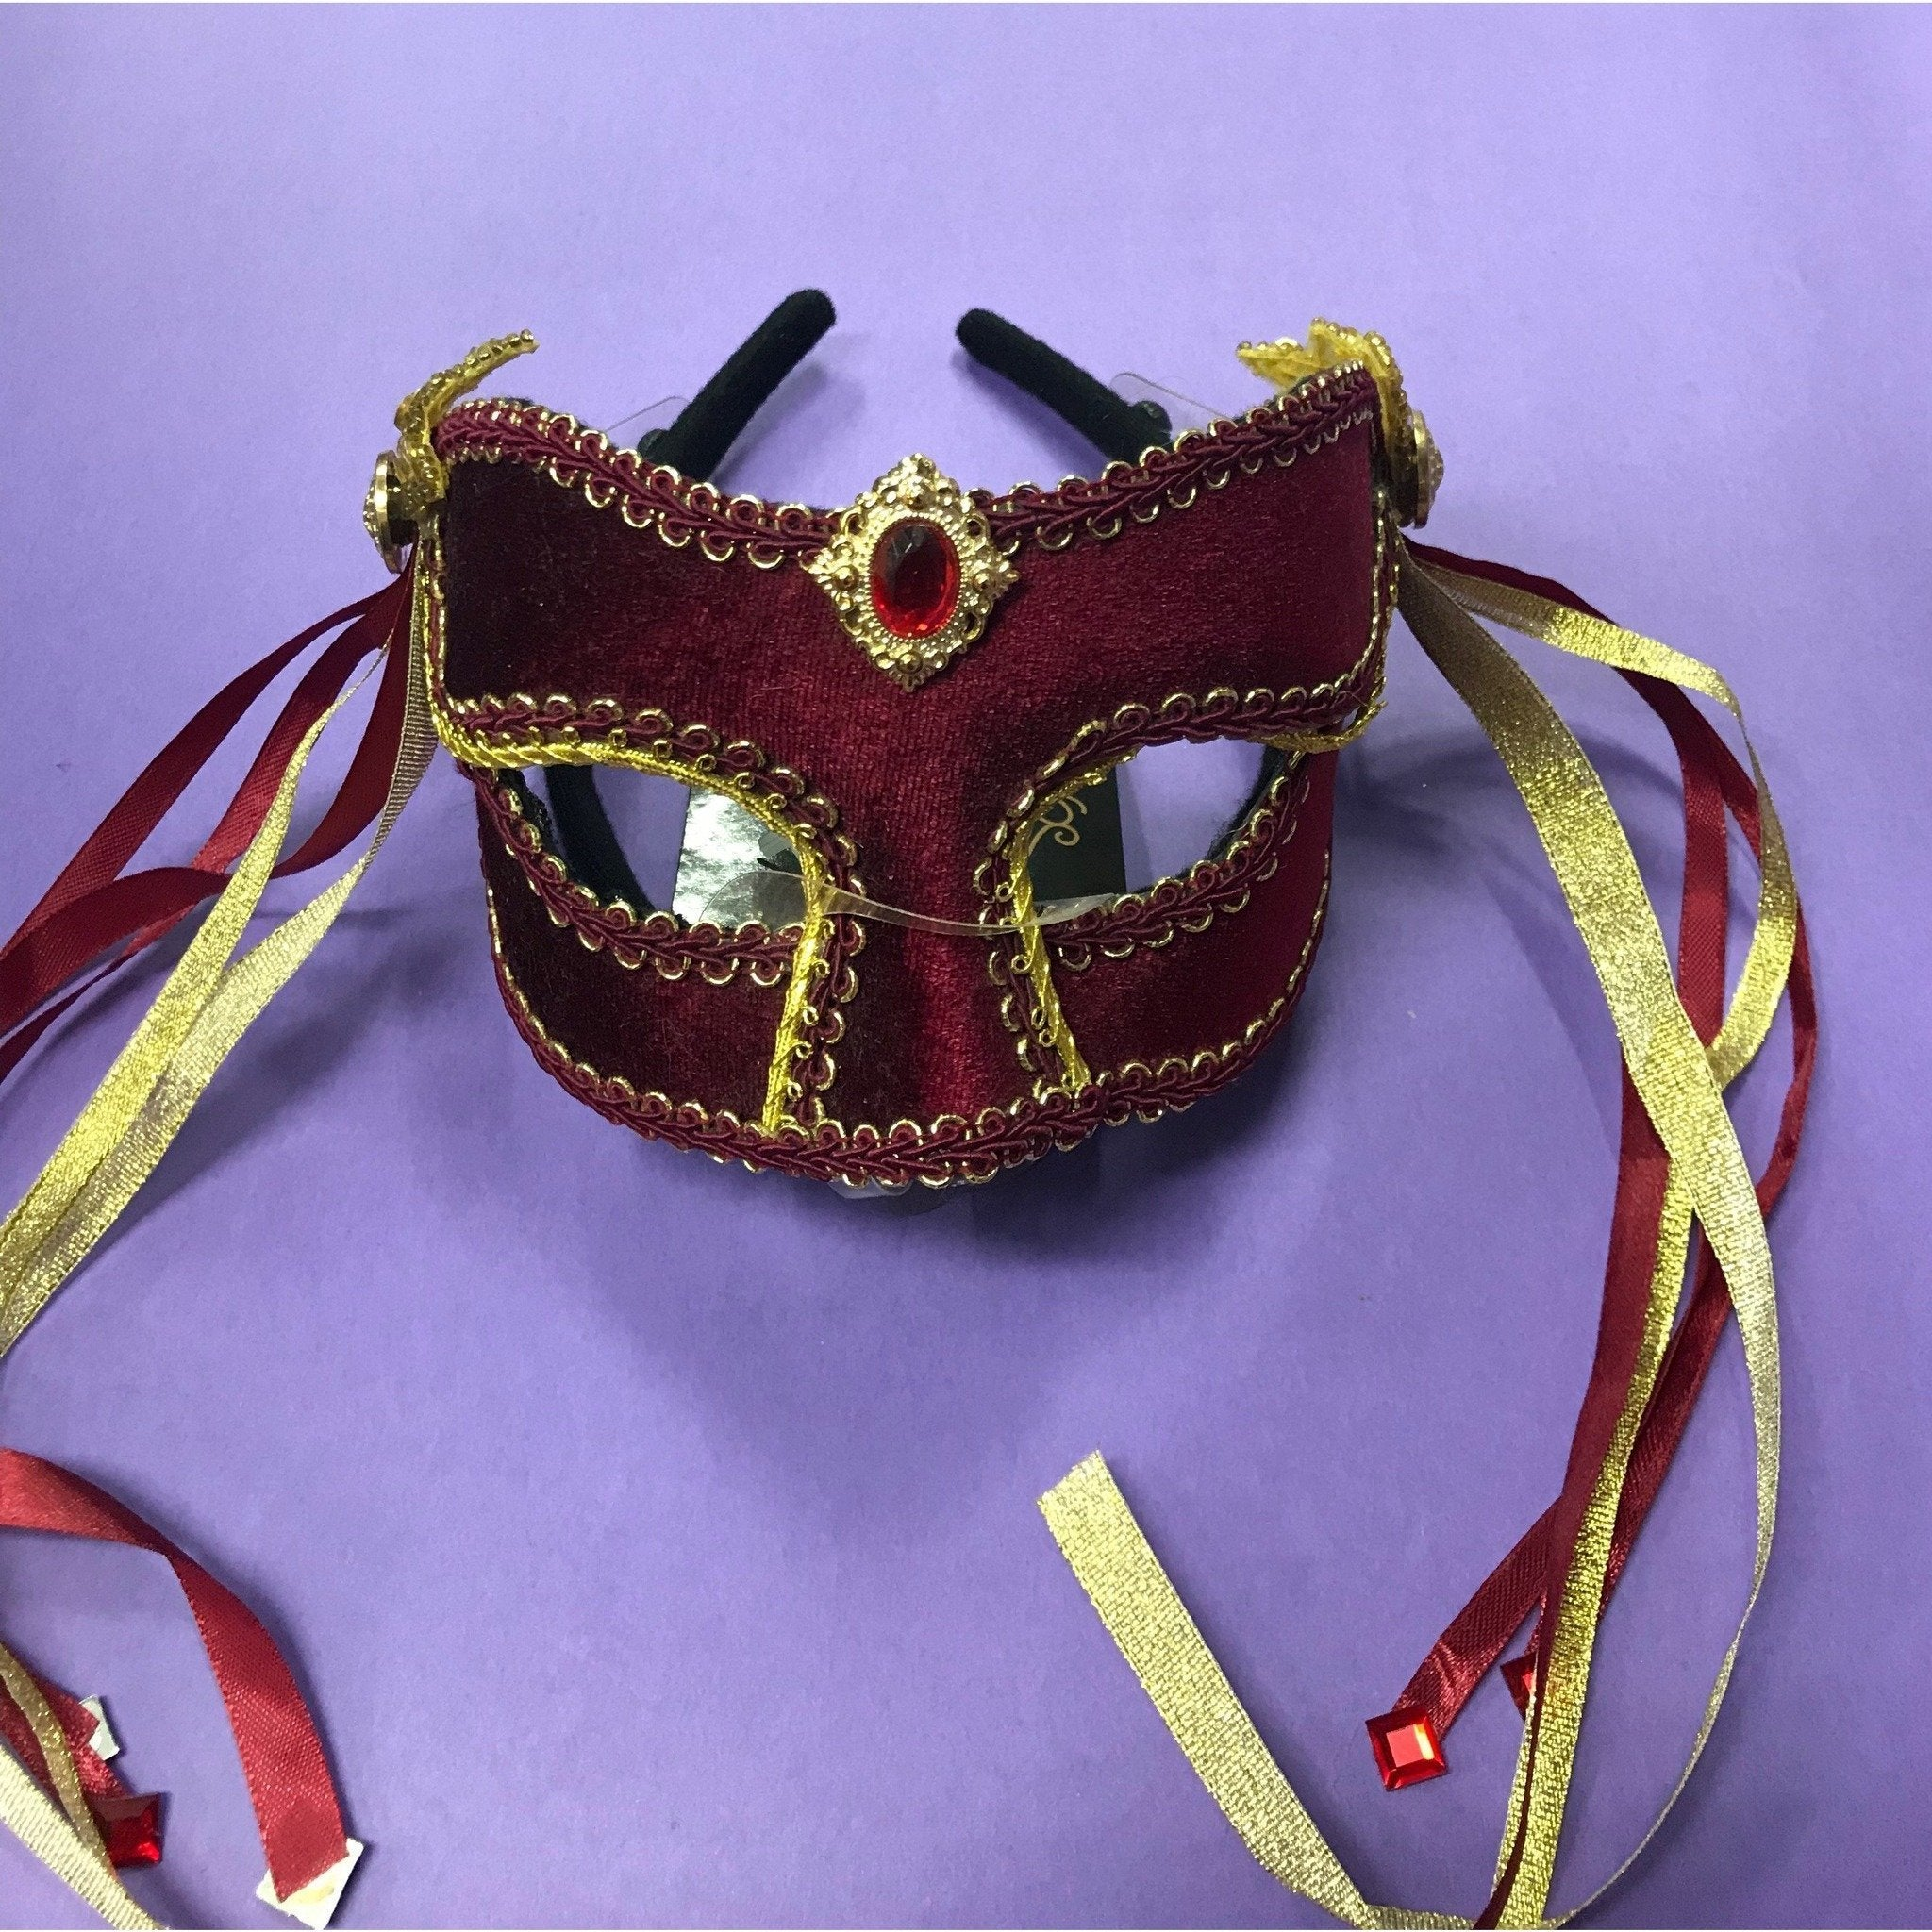 Maroon Carnival Masquerade Mask - The Costume Company | Fancy Dress Costumes Hire and Purchase Brisbane and Australia